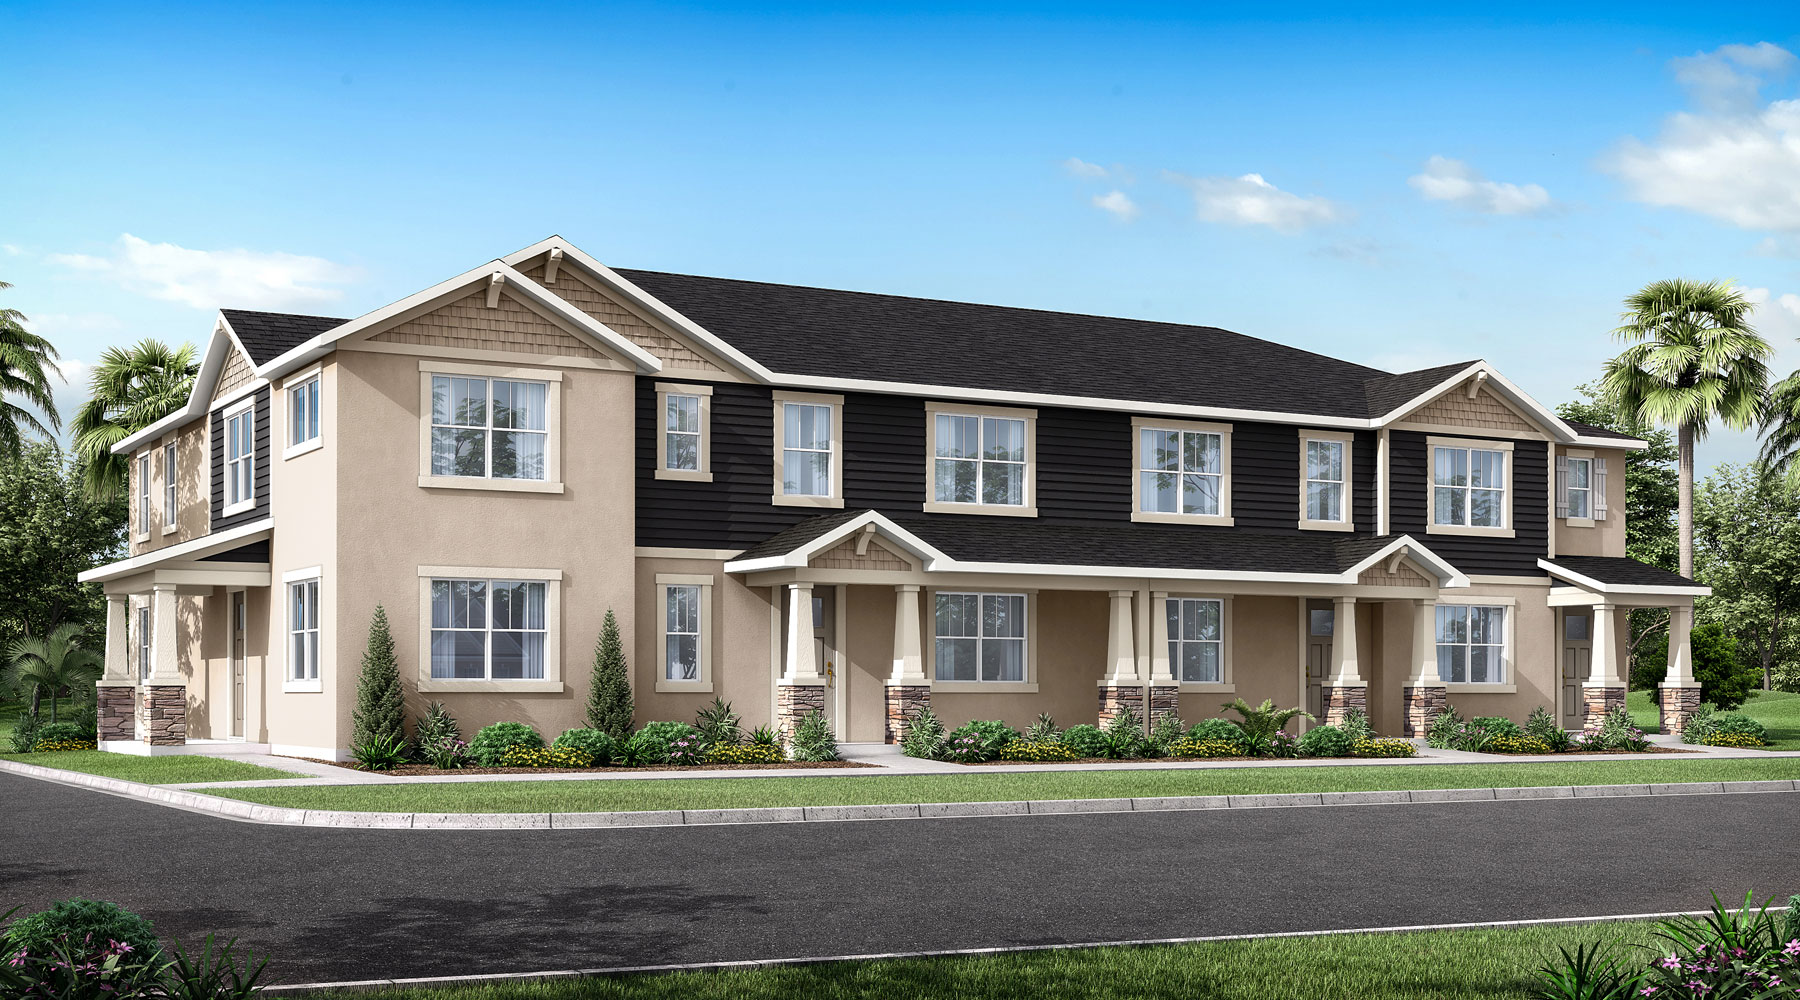 Laurel II Plan TownHomes at Meridian Parks in Orlando Florida by Mattamy Homes